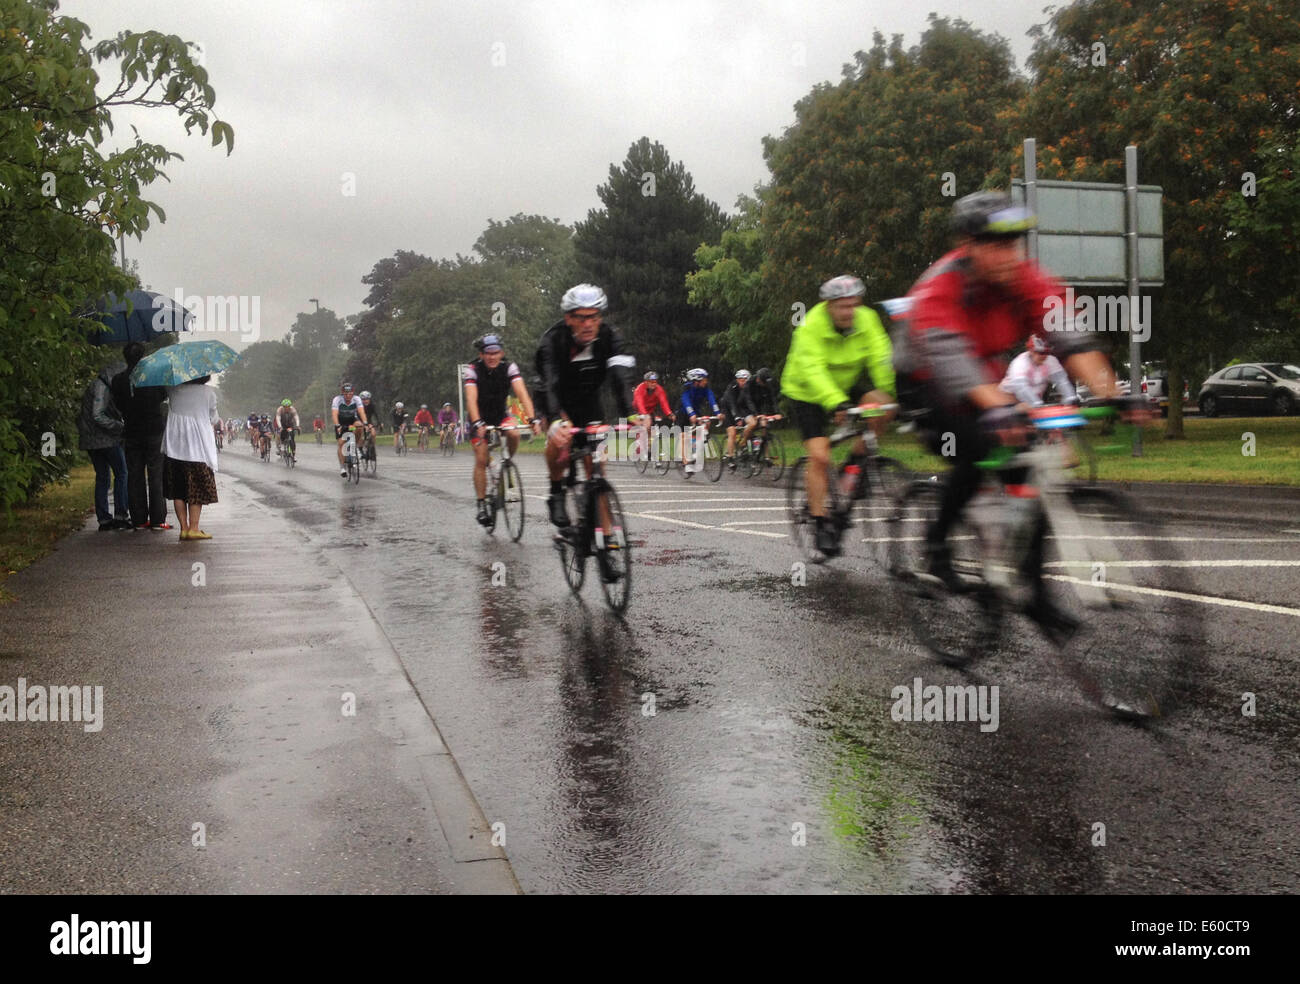 West Molesey, Surrey, UK. 10th Aug, 2014. Cyclists in the Prudential Ride London face torrential rain as they pass - Stock Image